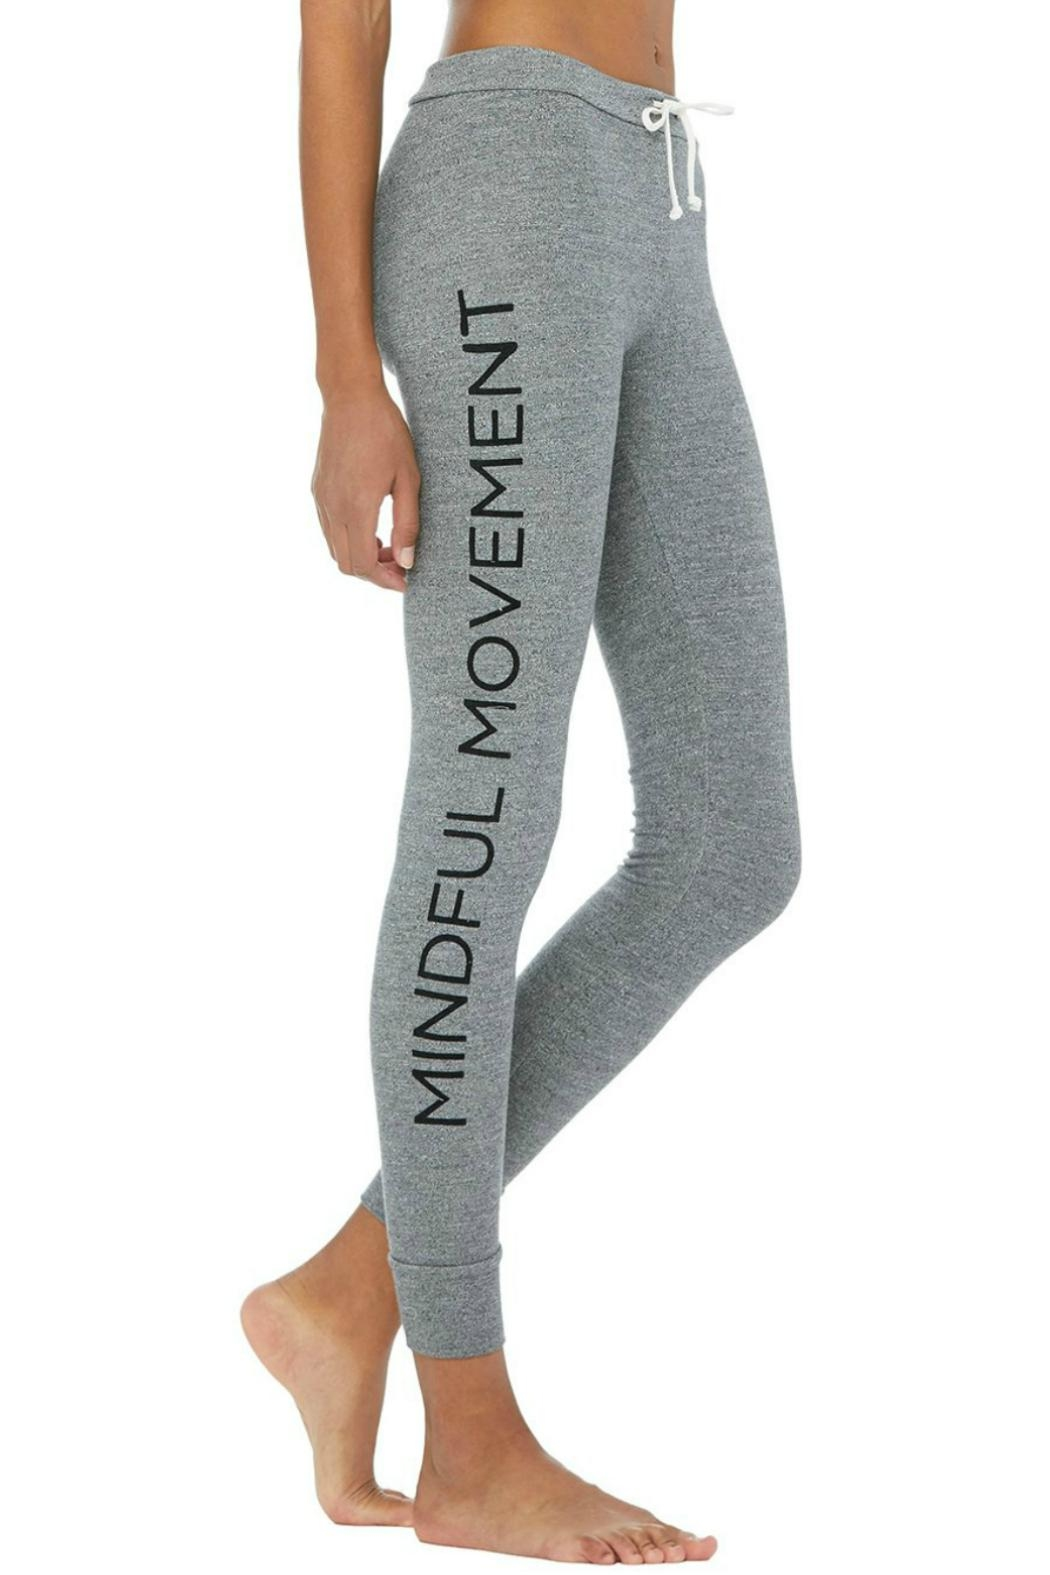 268ee192f6 ALO Yoga Mindful Movement Sweatpants from New Jersey by Back 2 ...